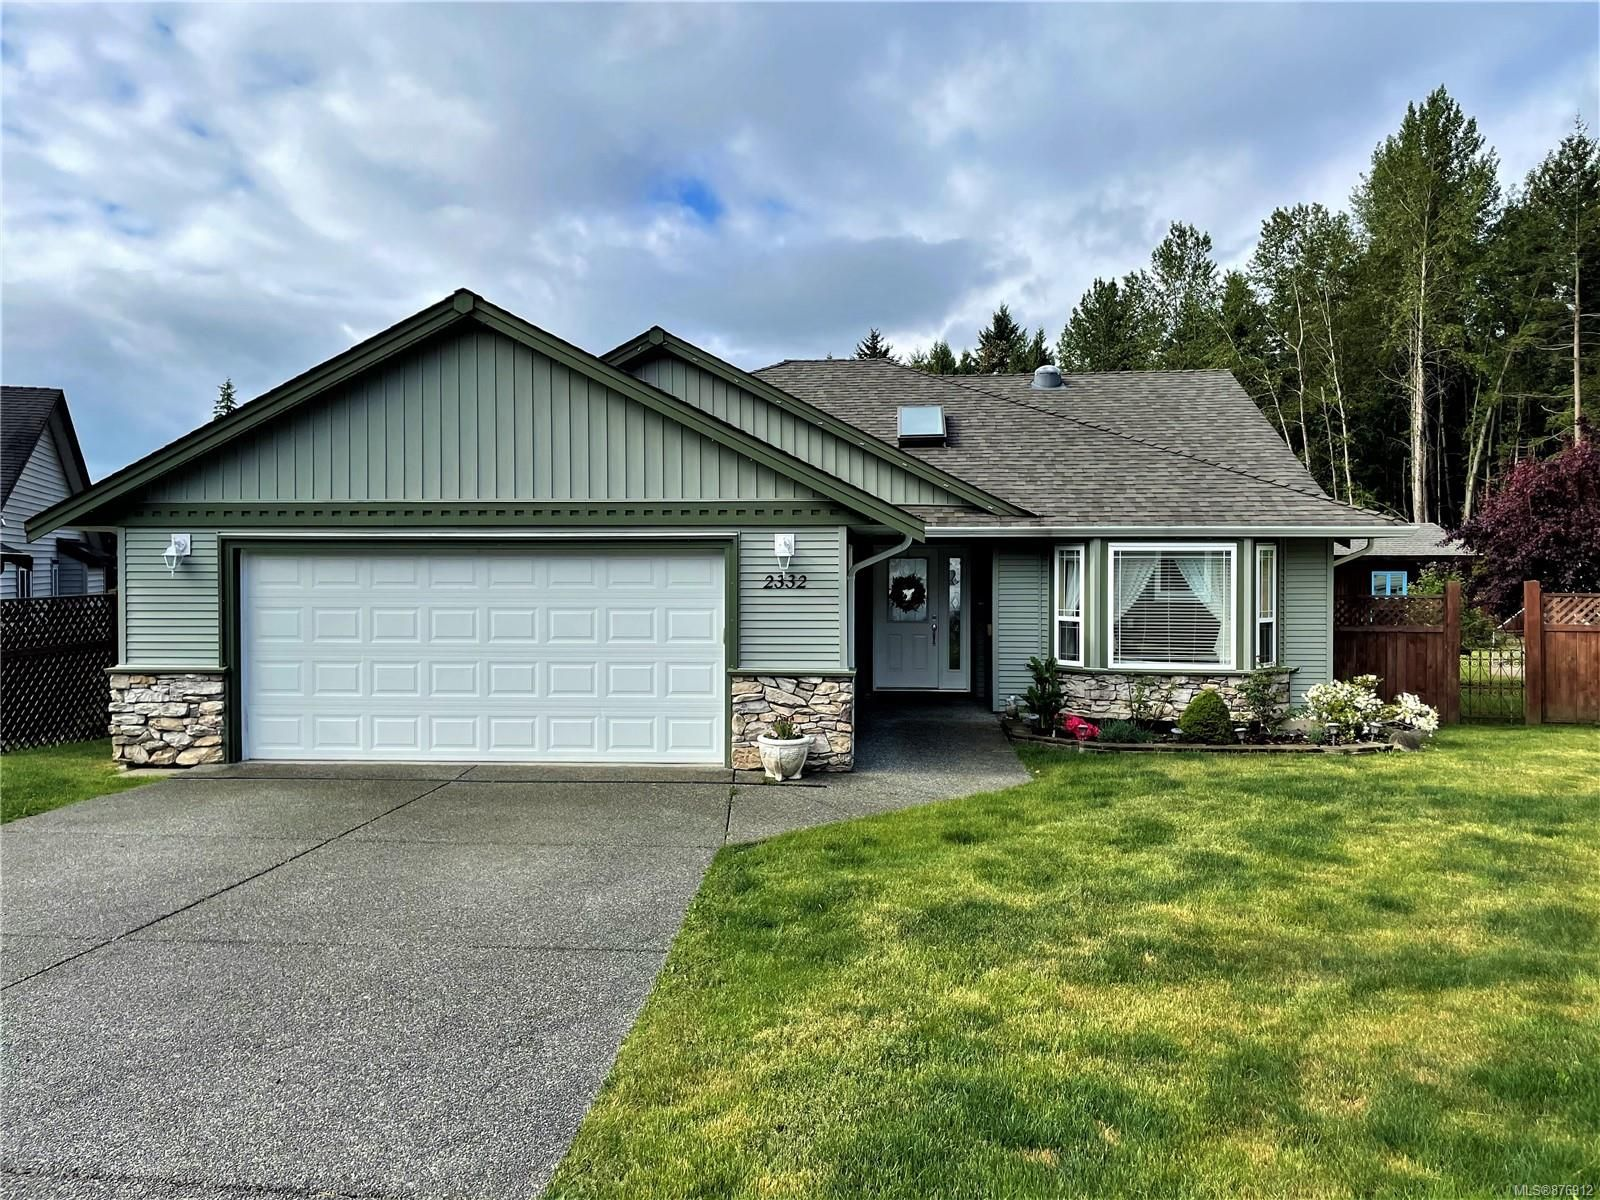 Wheelchair friendly rancher in the Divers Lake area. Fenced cul-de-sac lot is over 10,000 sqft with excellent RV parking to the rear